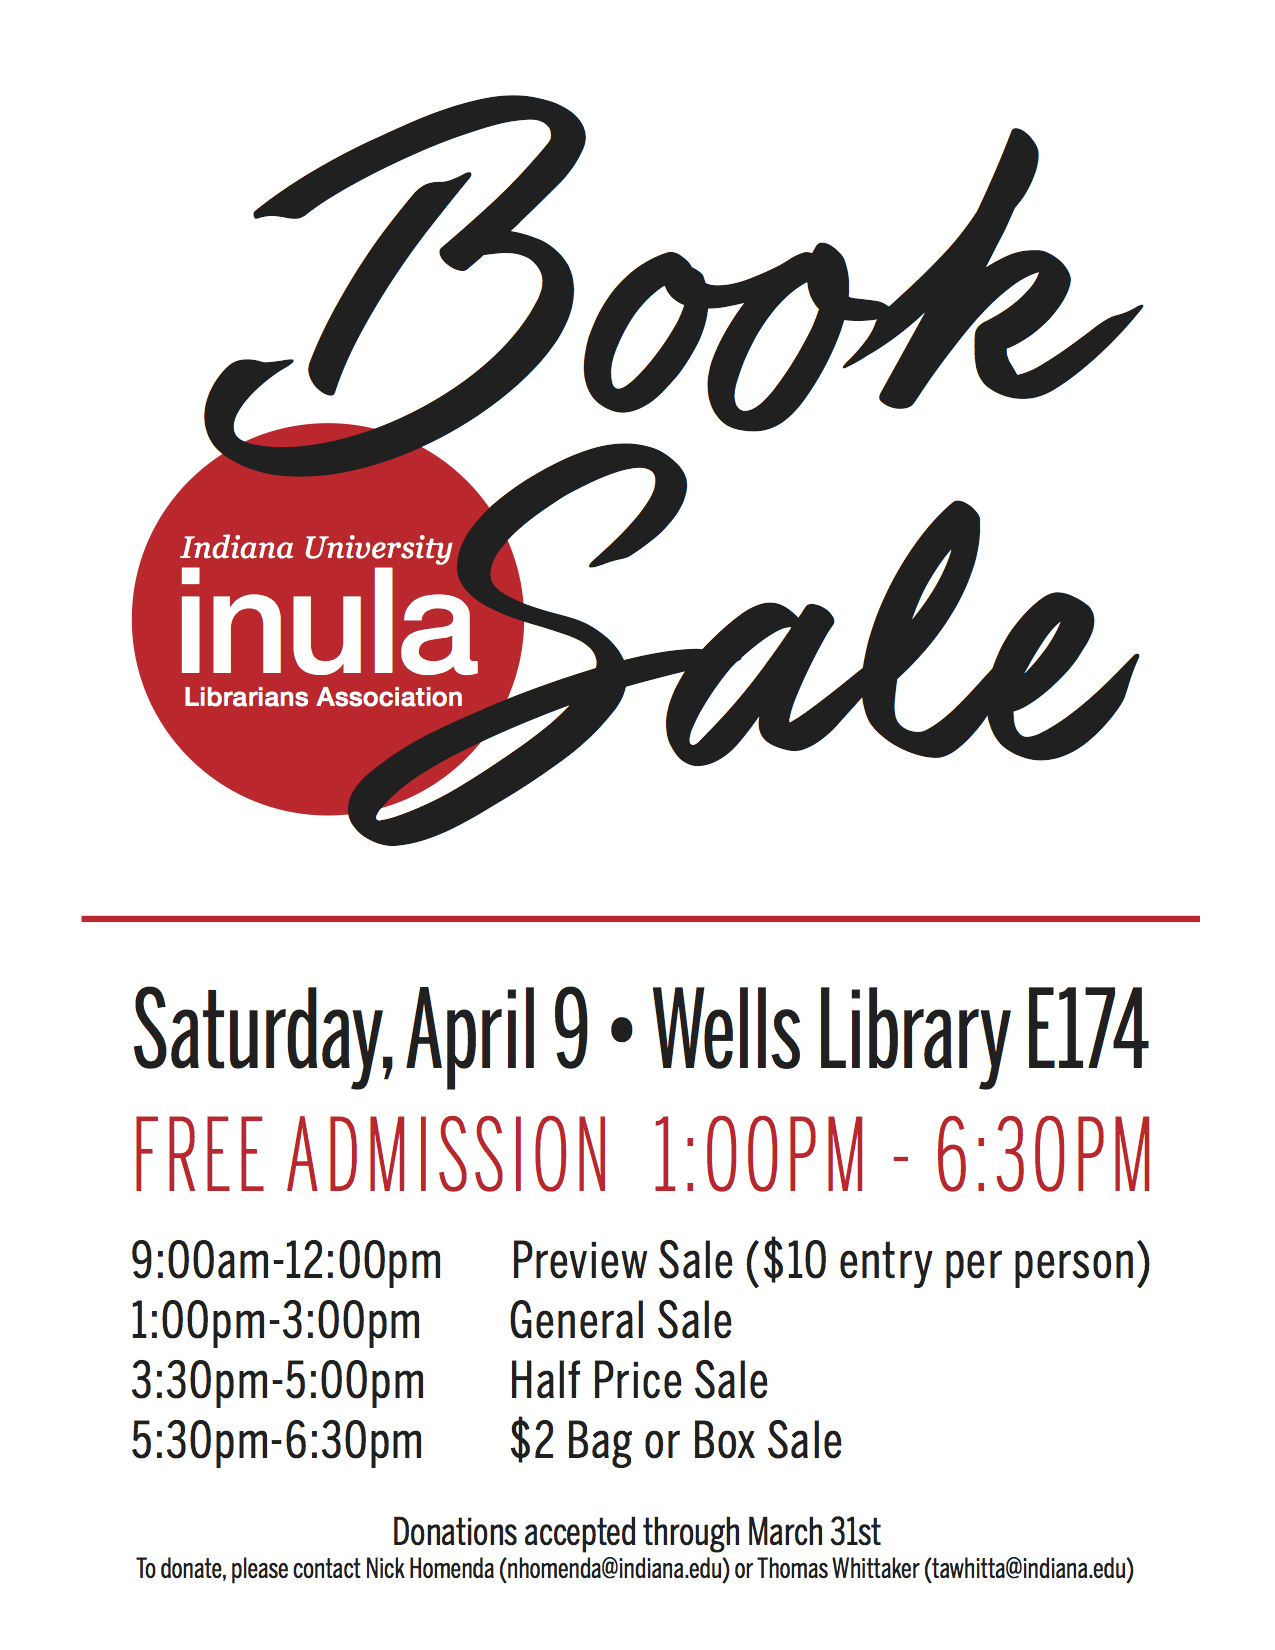 Poster describing the 2016 book sale